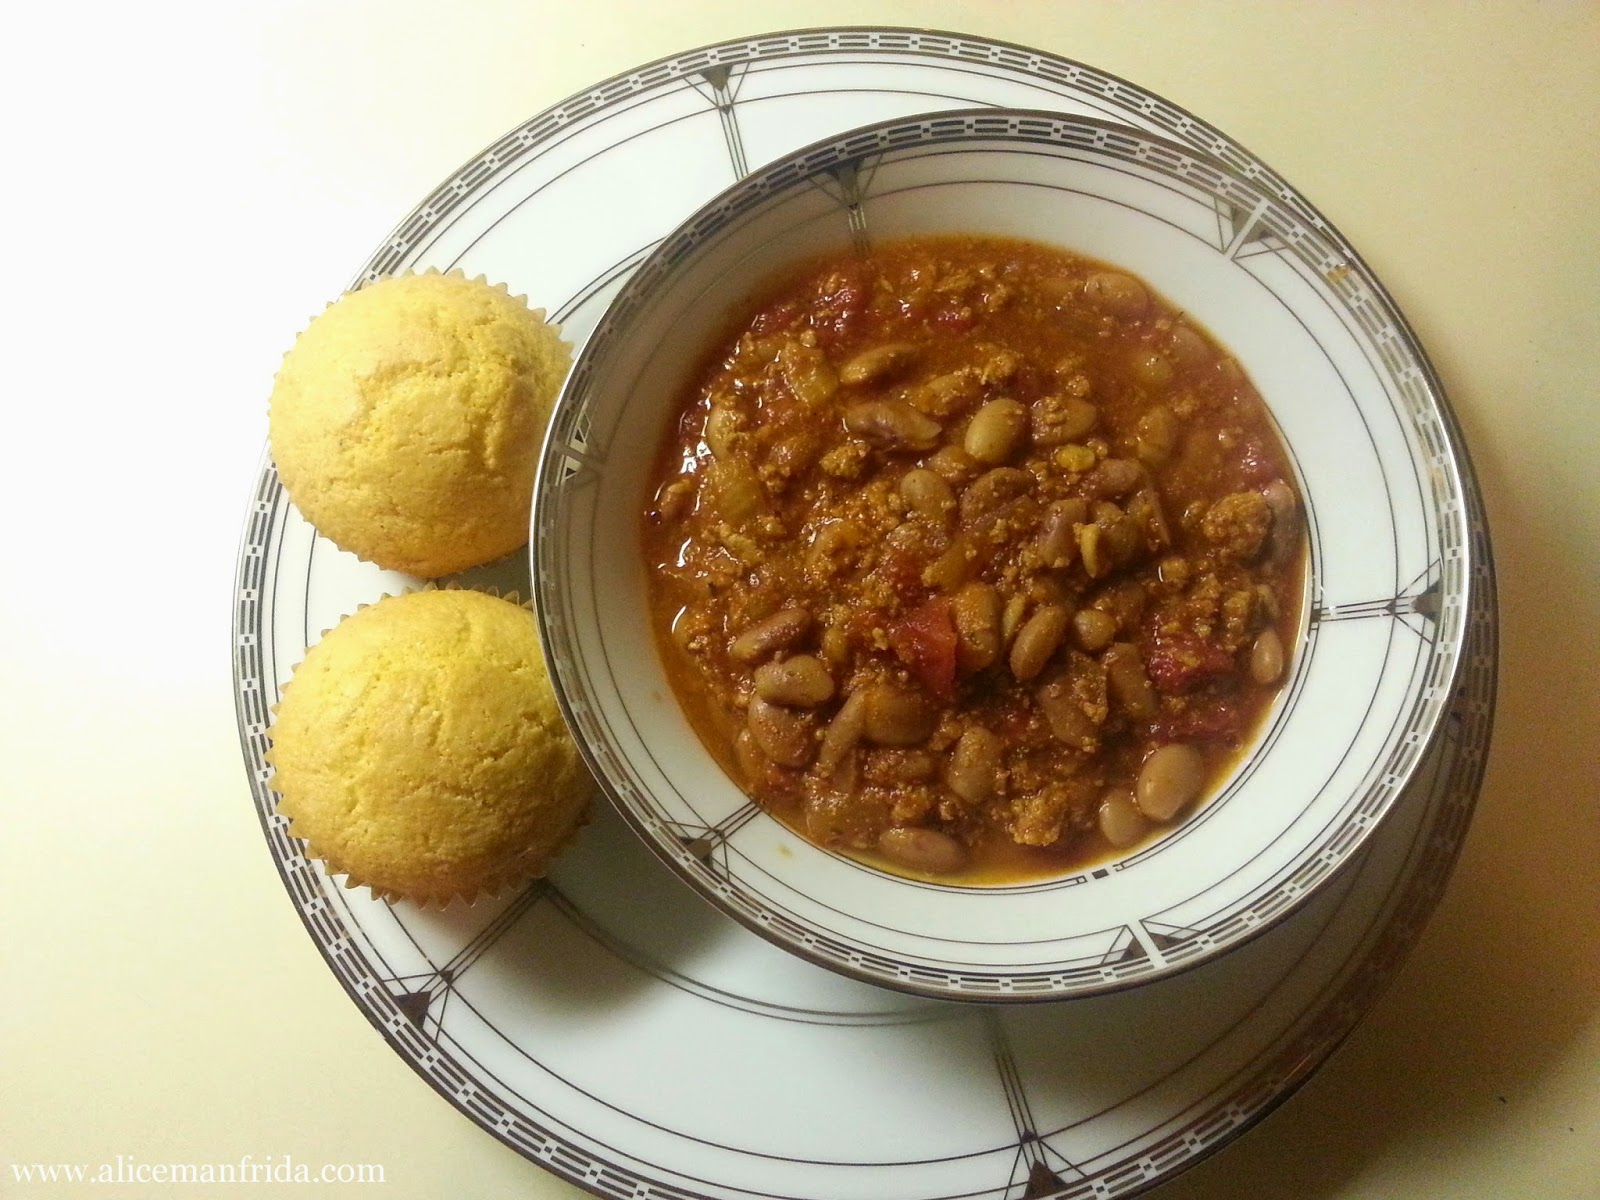 chili, turkey, beans, dinner, one pot meal